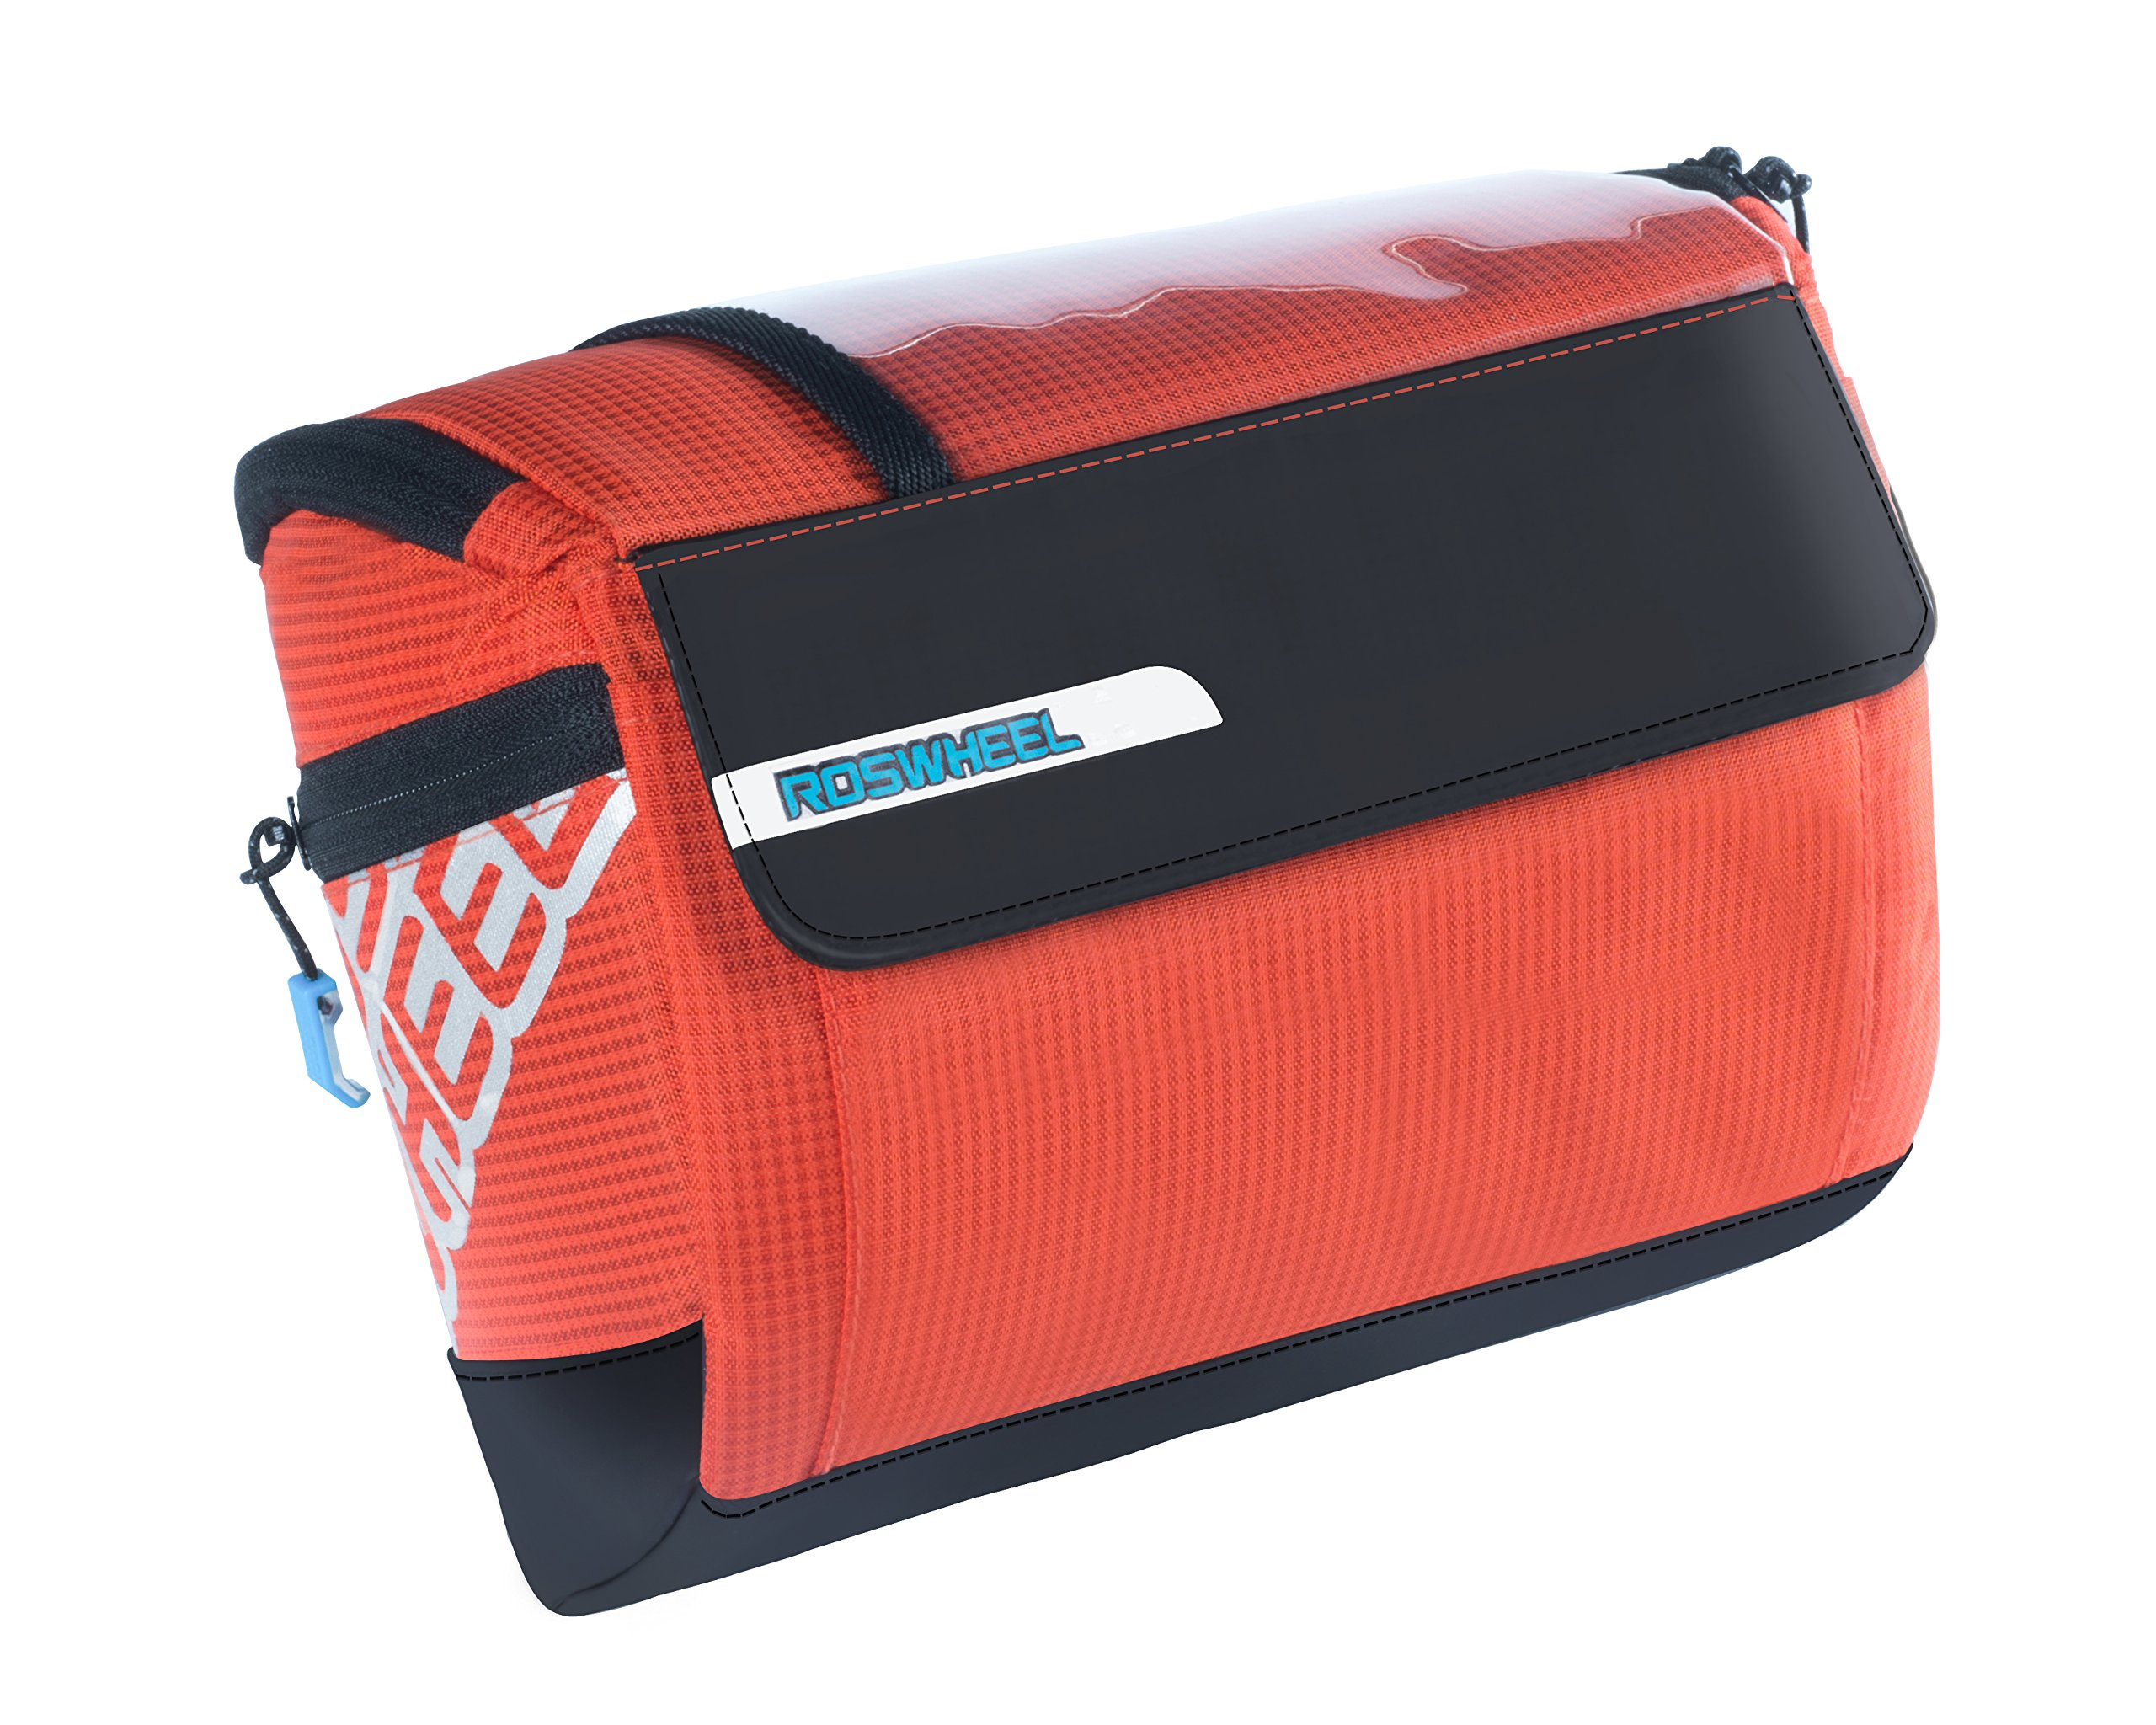 Roswheel 111271 LOHAS Series 3L Bike Handlebar Bag Bicycle Front Basket Cycling Accessories Pouch with Map Holder, Orange